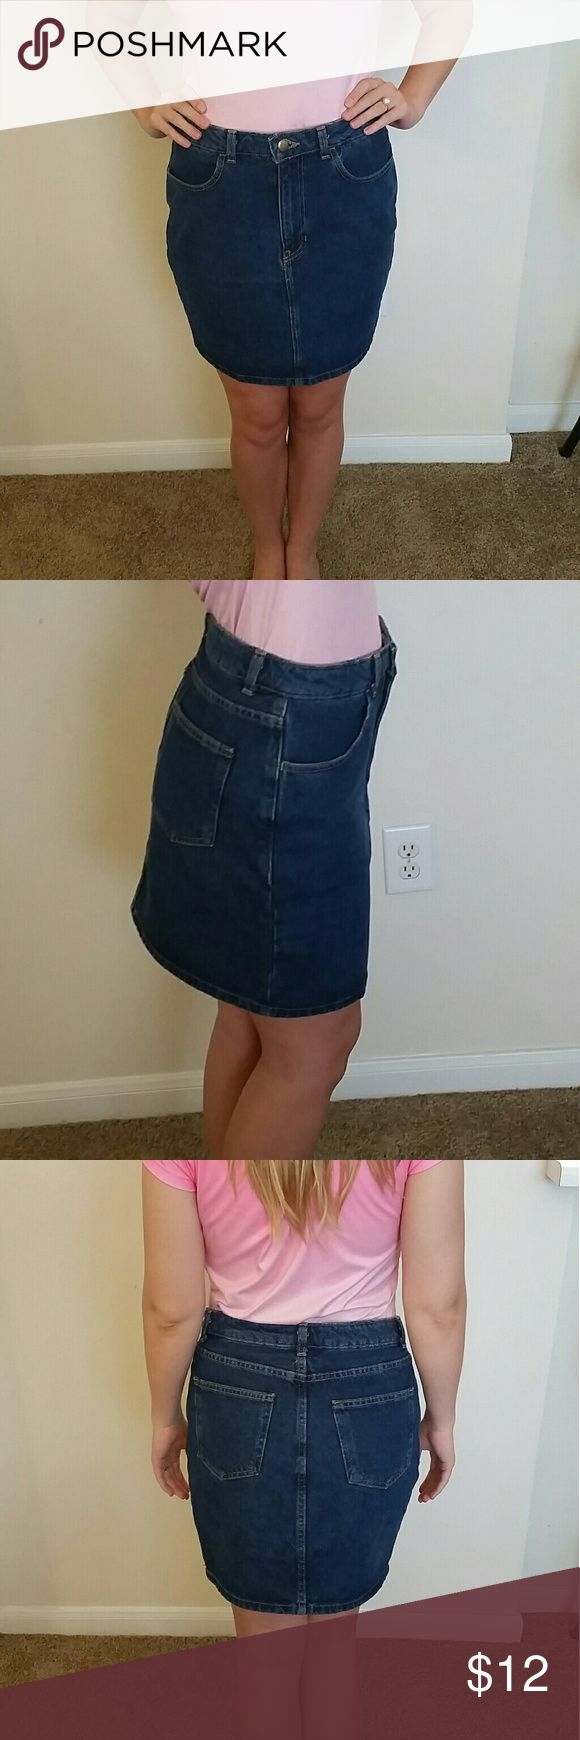 American Apparel Jean Skirt Like new denim skirt. Light weight and soft! Goes great with cowboy boots or wedges- very versatile! Add this to your summer wardrobe today! Fits like a medium. American Apparel Skirts Pencil